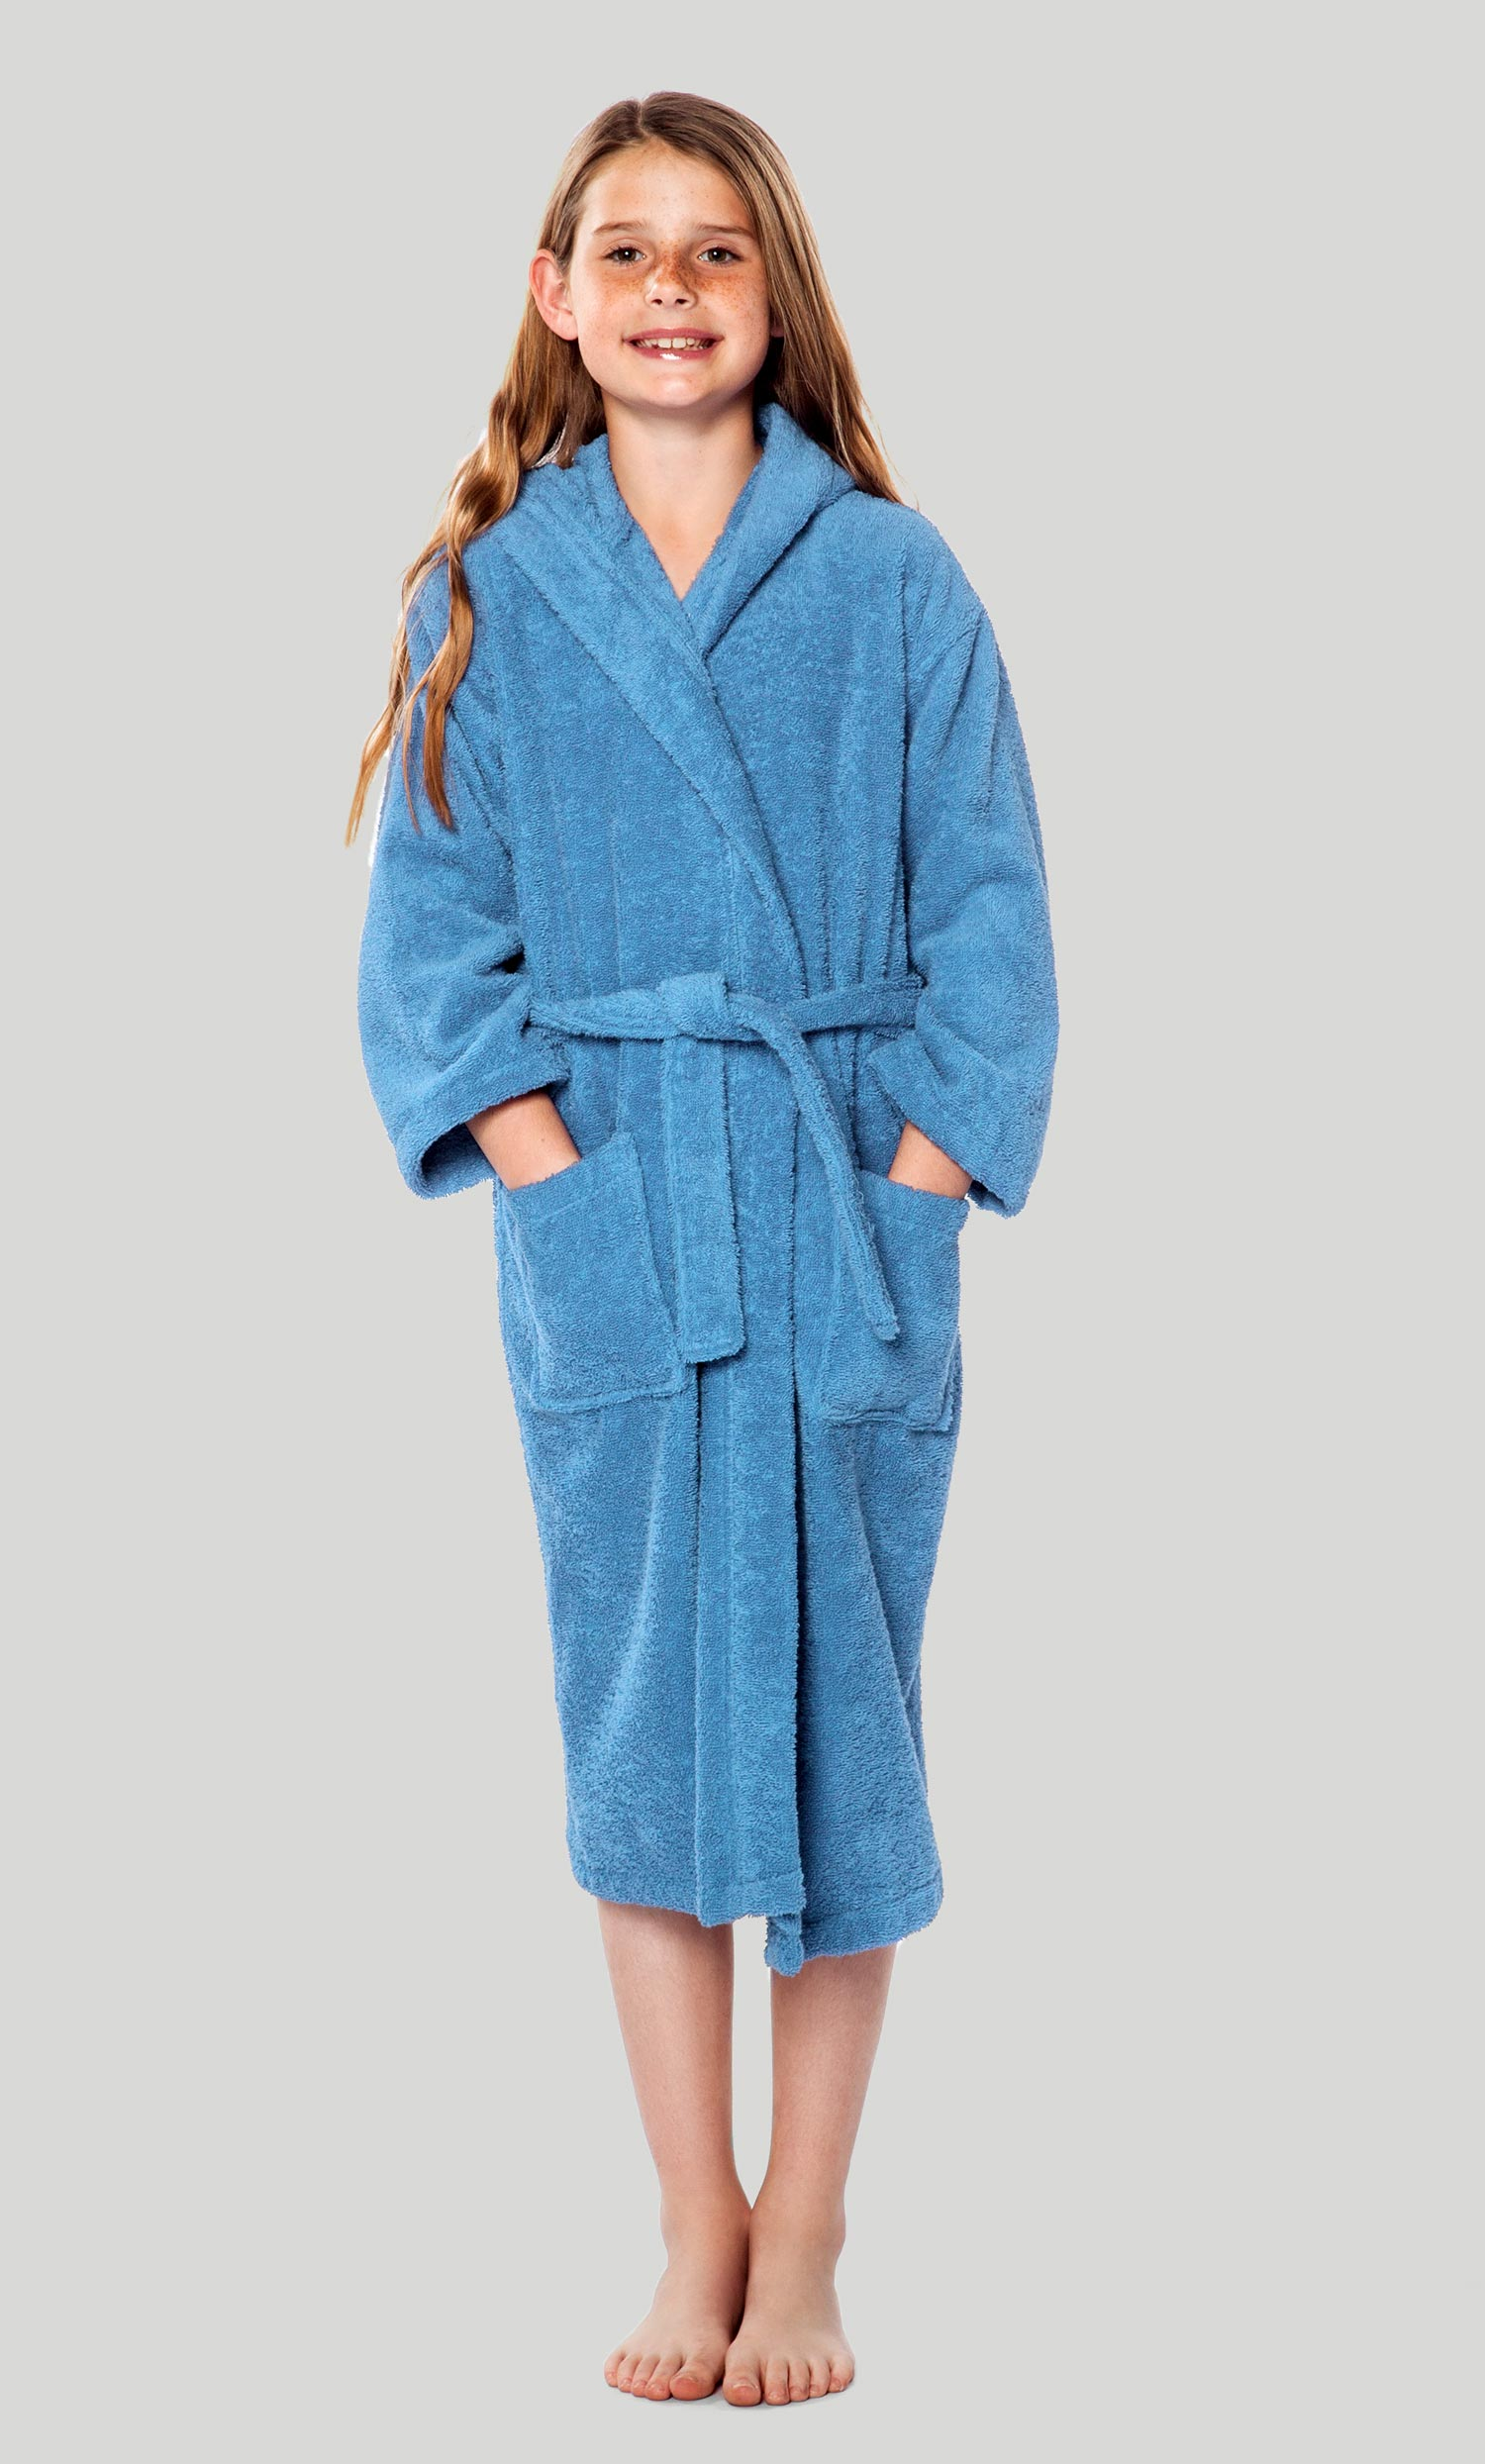 cd7d133ec3 Kids Bathrobes    Terry Kids Hooded Bathrobes    100% Turkish Cotton Light  Blue Hooded Terry Kid s Bathrobe - Wholesale bathrobes